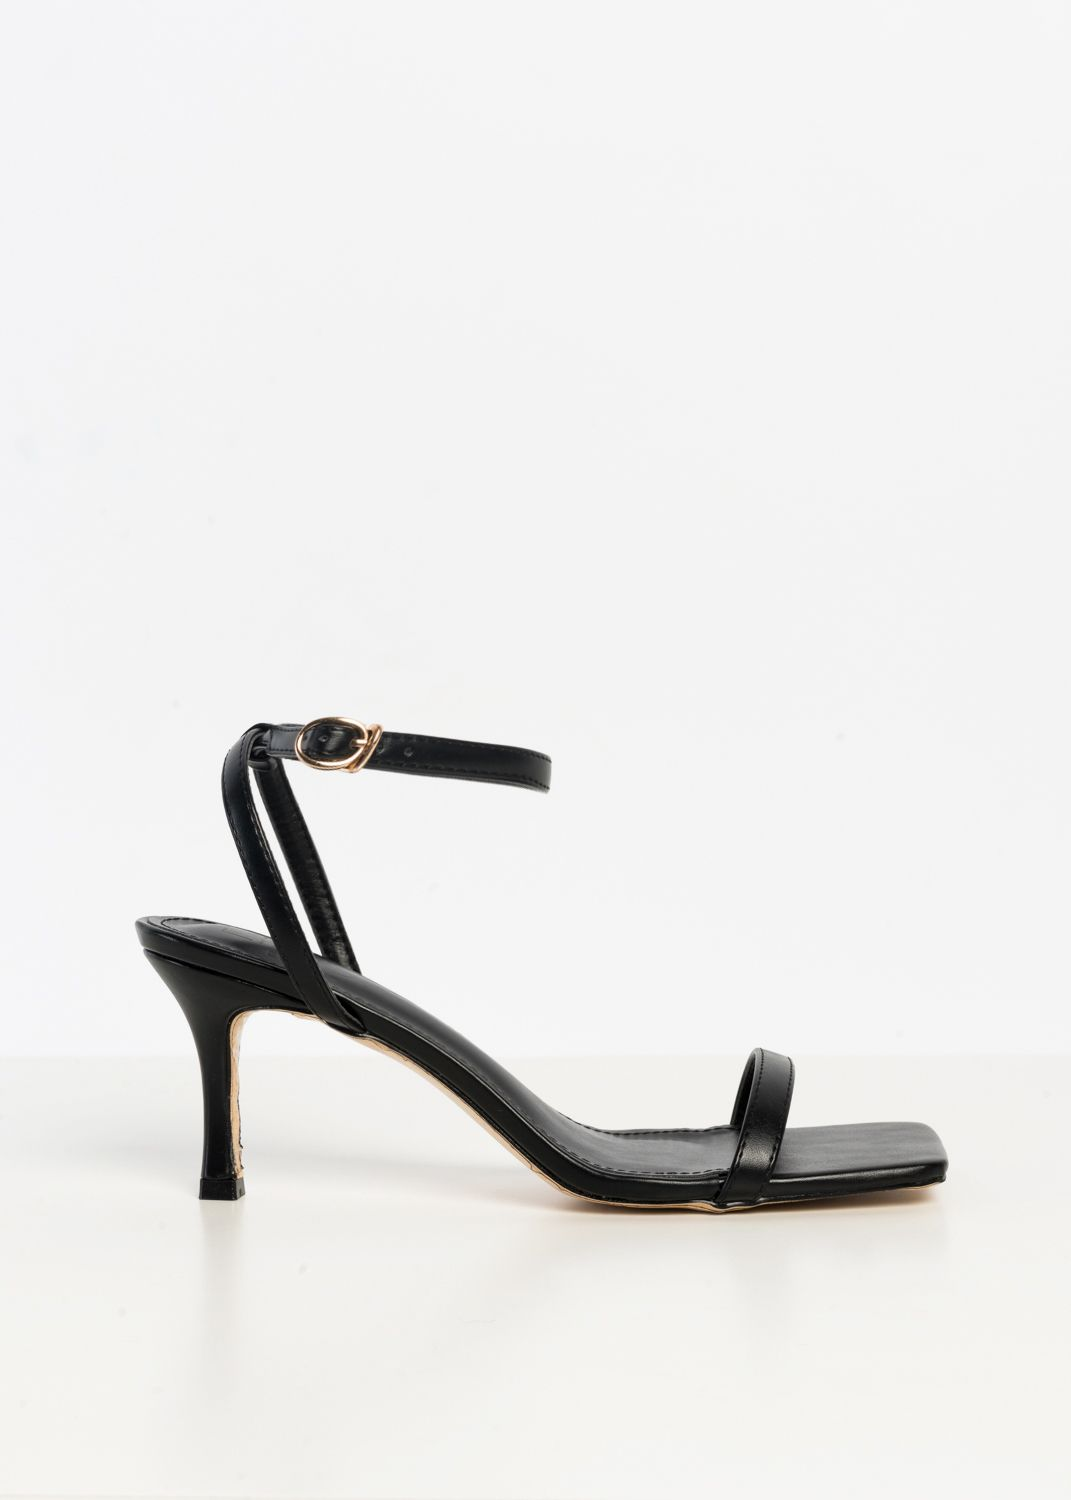 HIGH-HEEL SANDALS CON TOES SQUARE